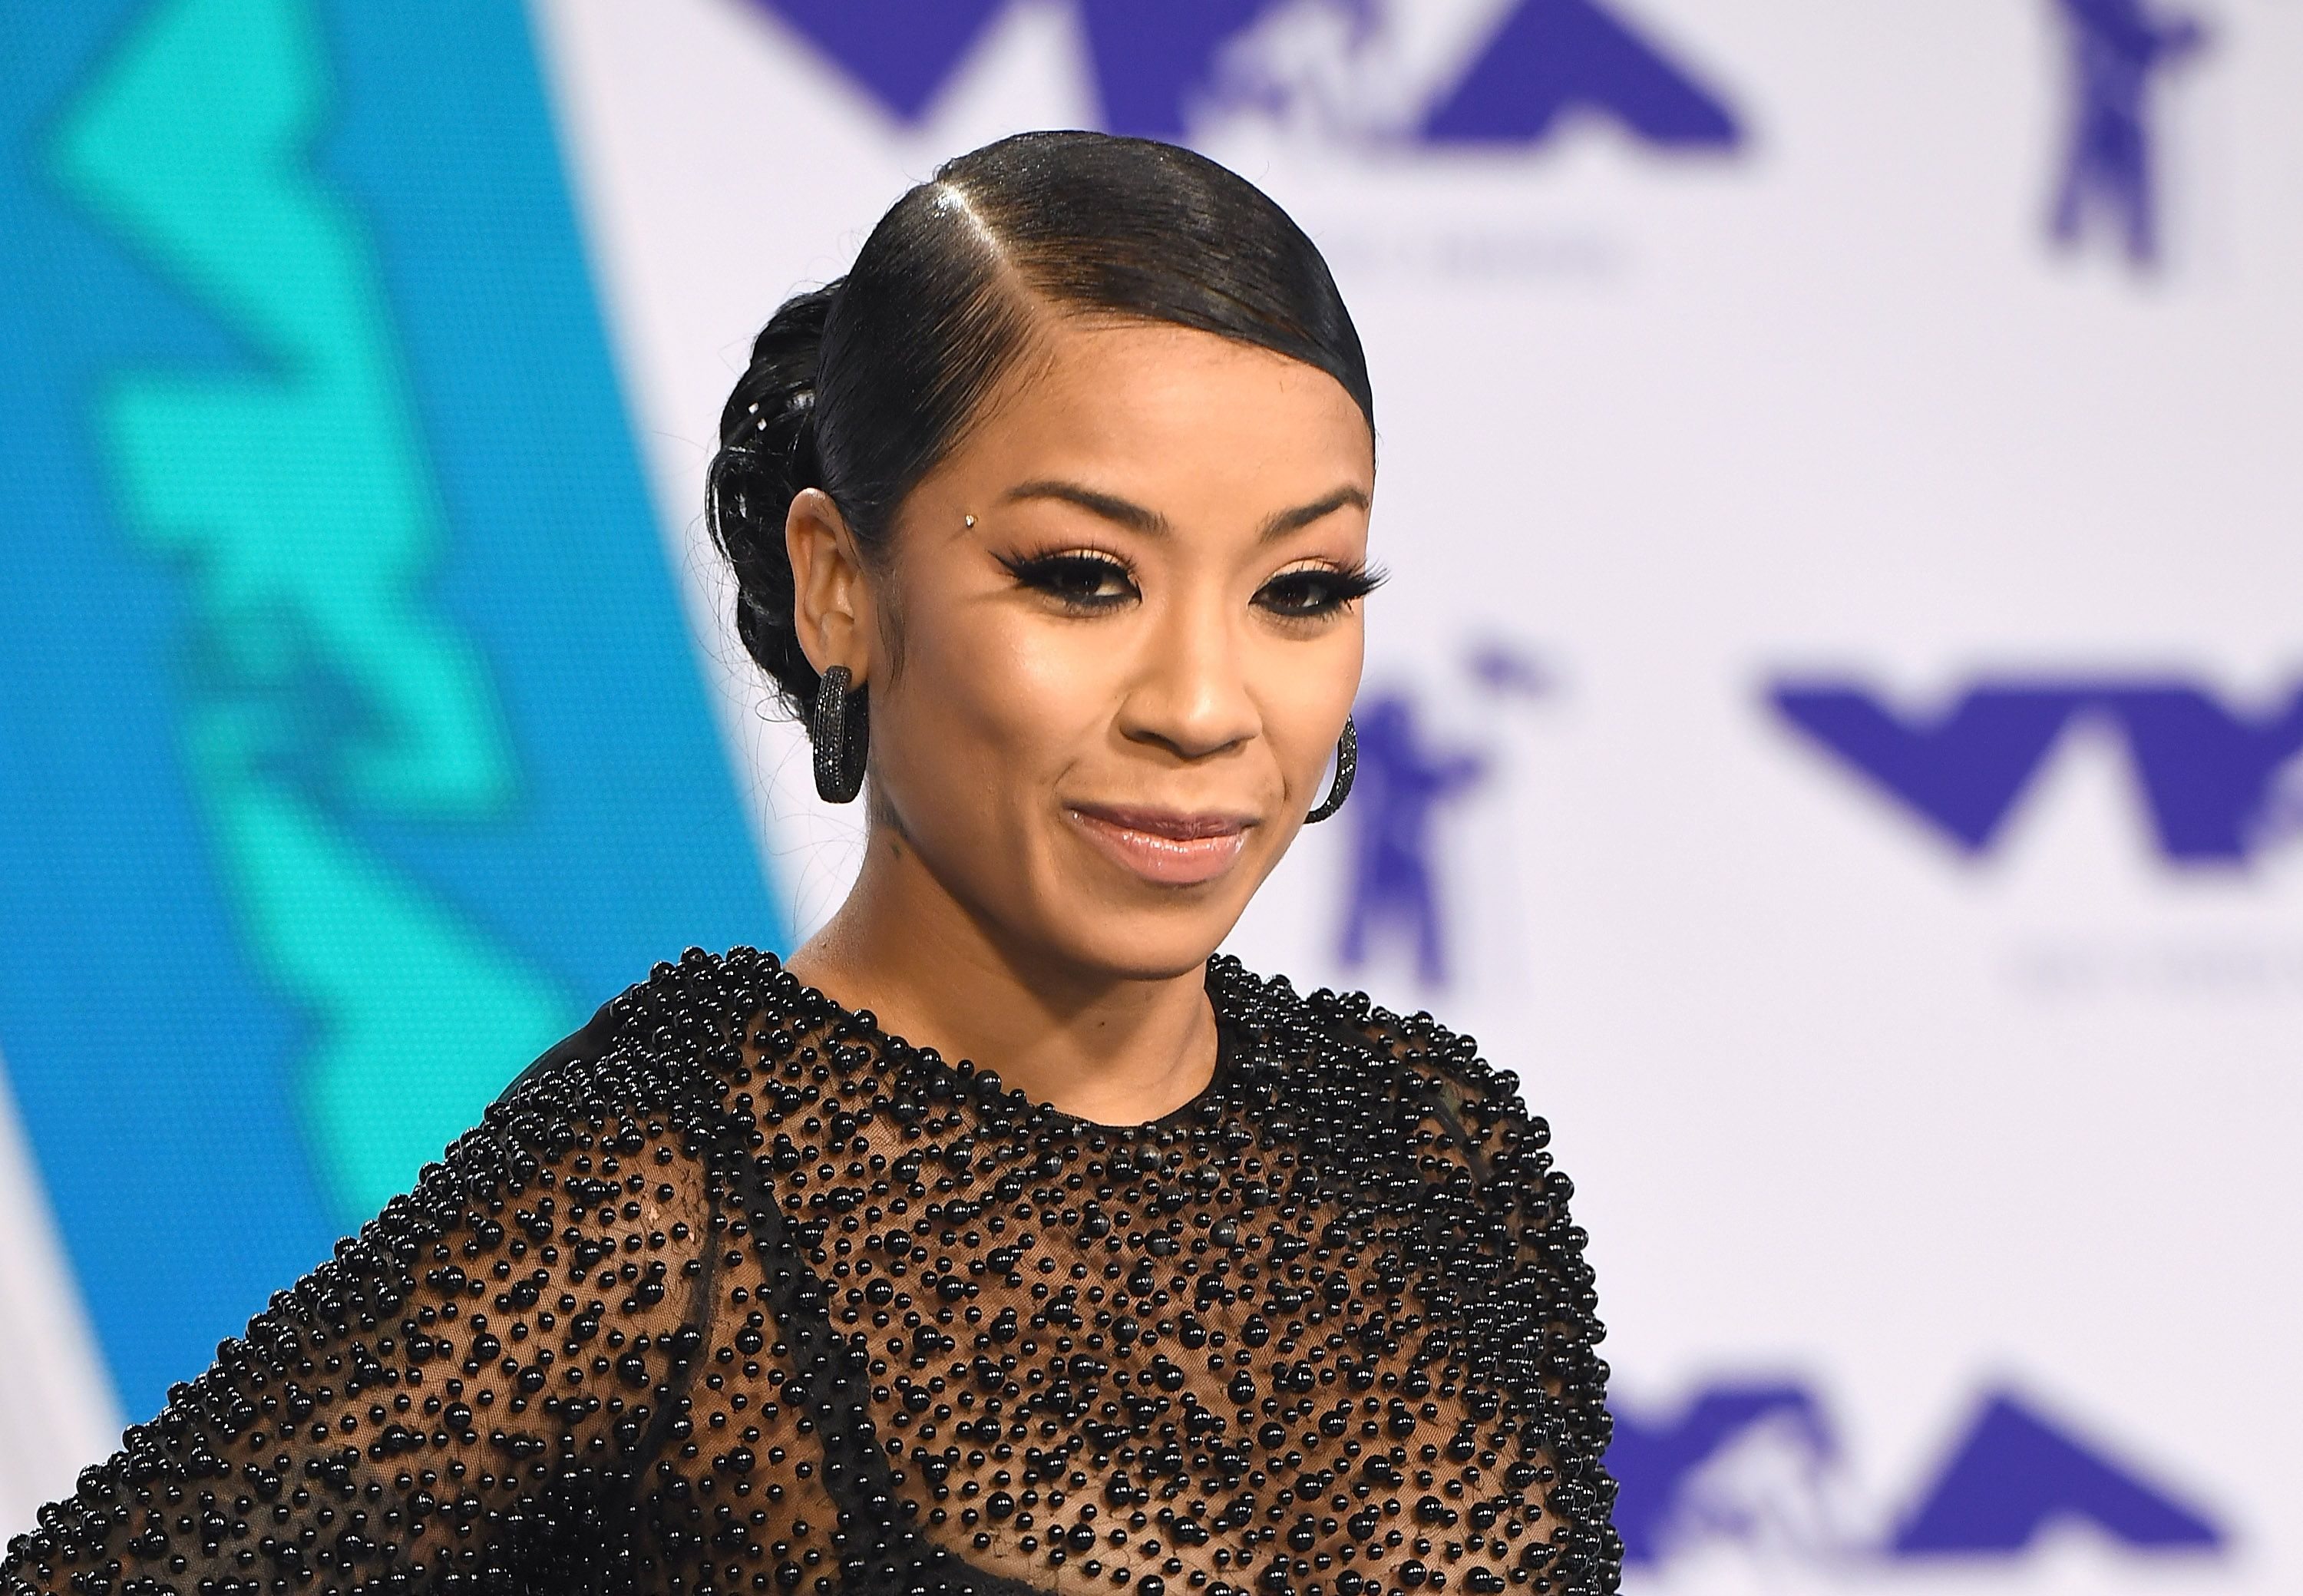 Keyshia Cole at the 2017 MTV Video Music Awards at The Forum on August 27, 2017. | Photo: Getty Images